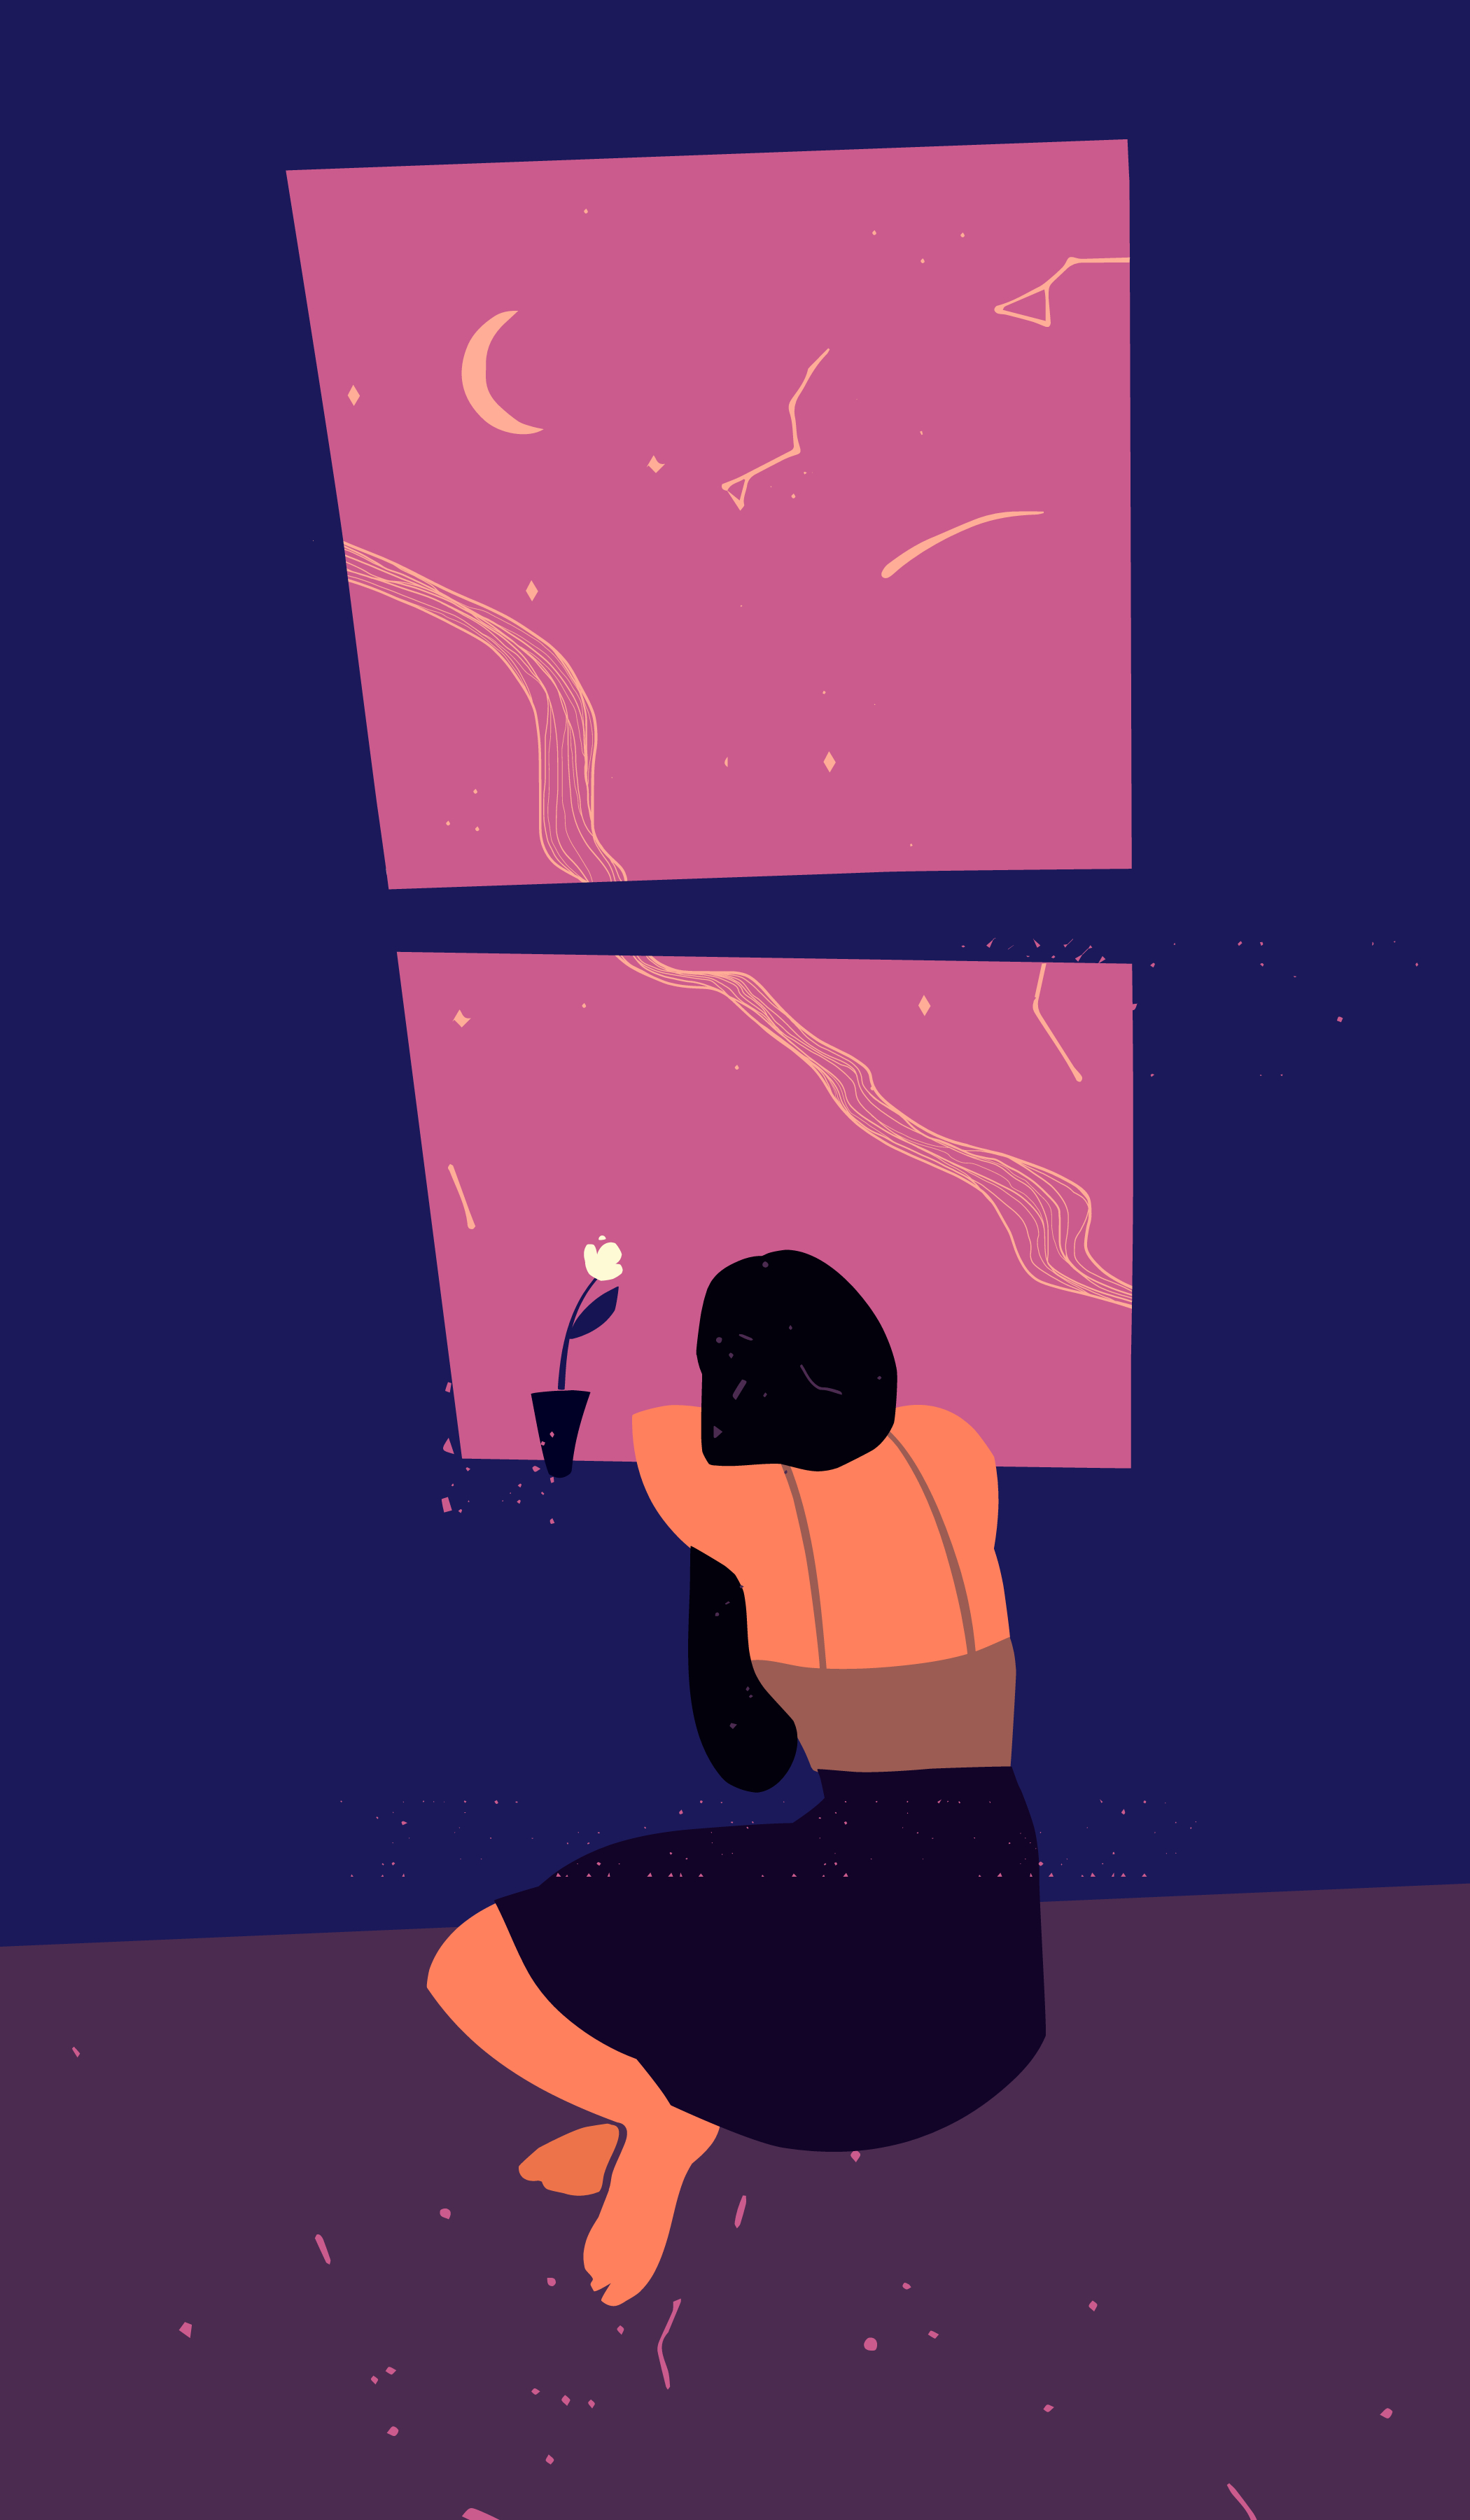 Illustration of a person sitting looking out a window.